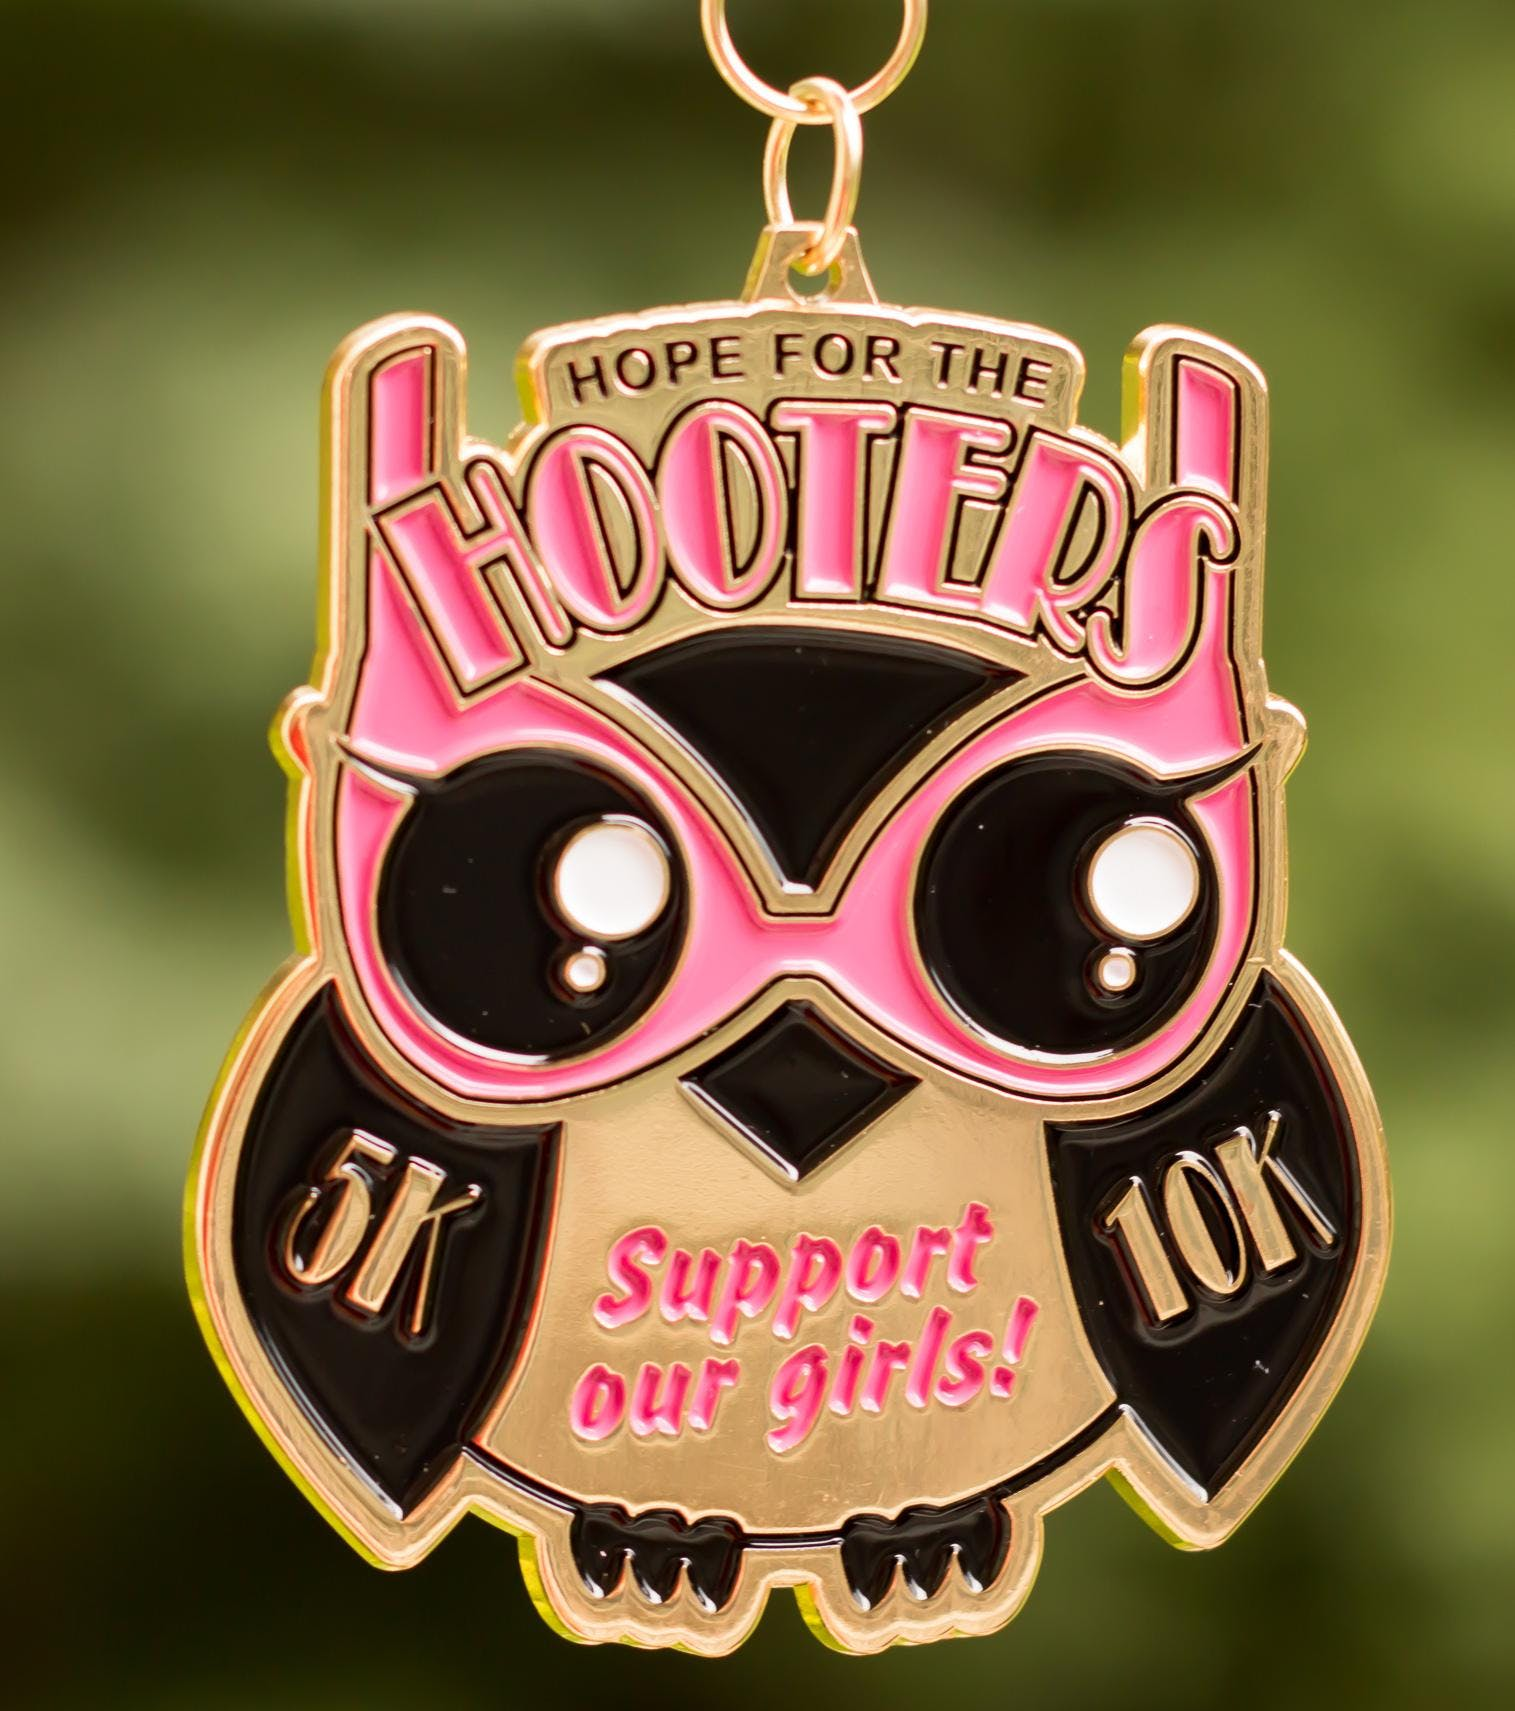 Now Only $10! Support Our Girls: Hope for the Hooters 5K & 10K- Chandler